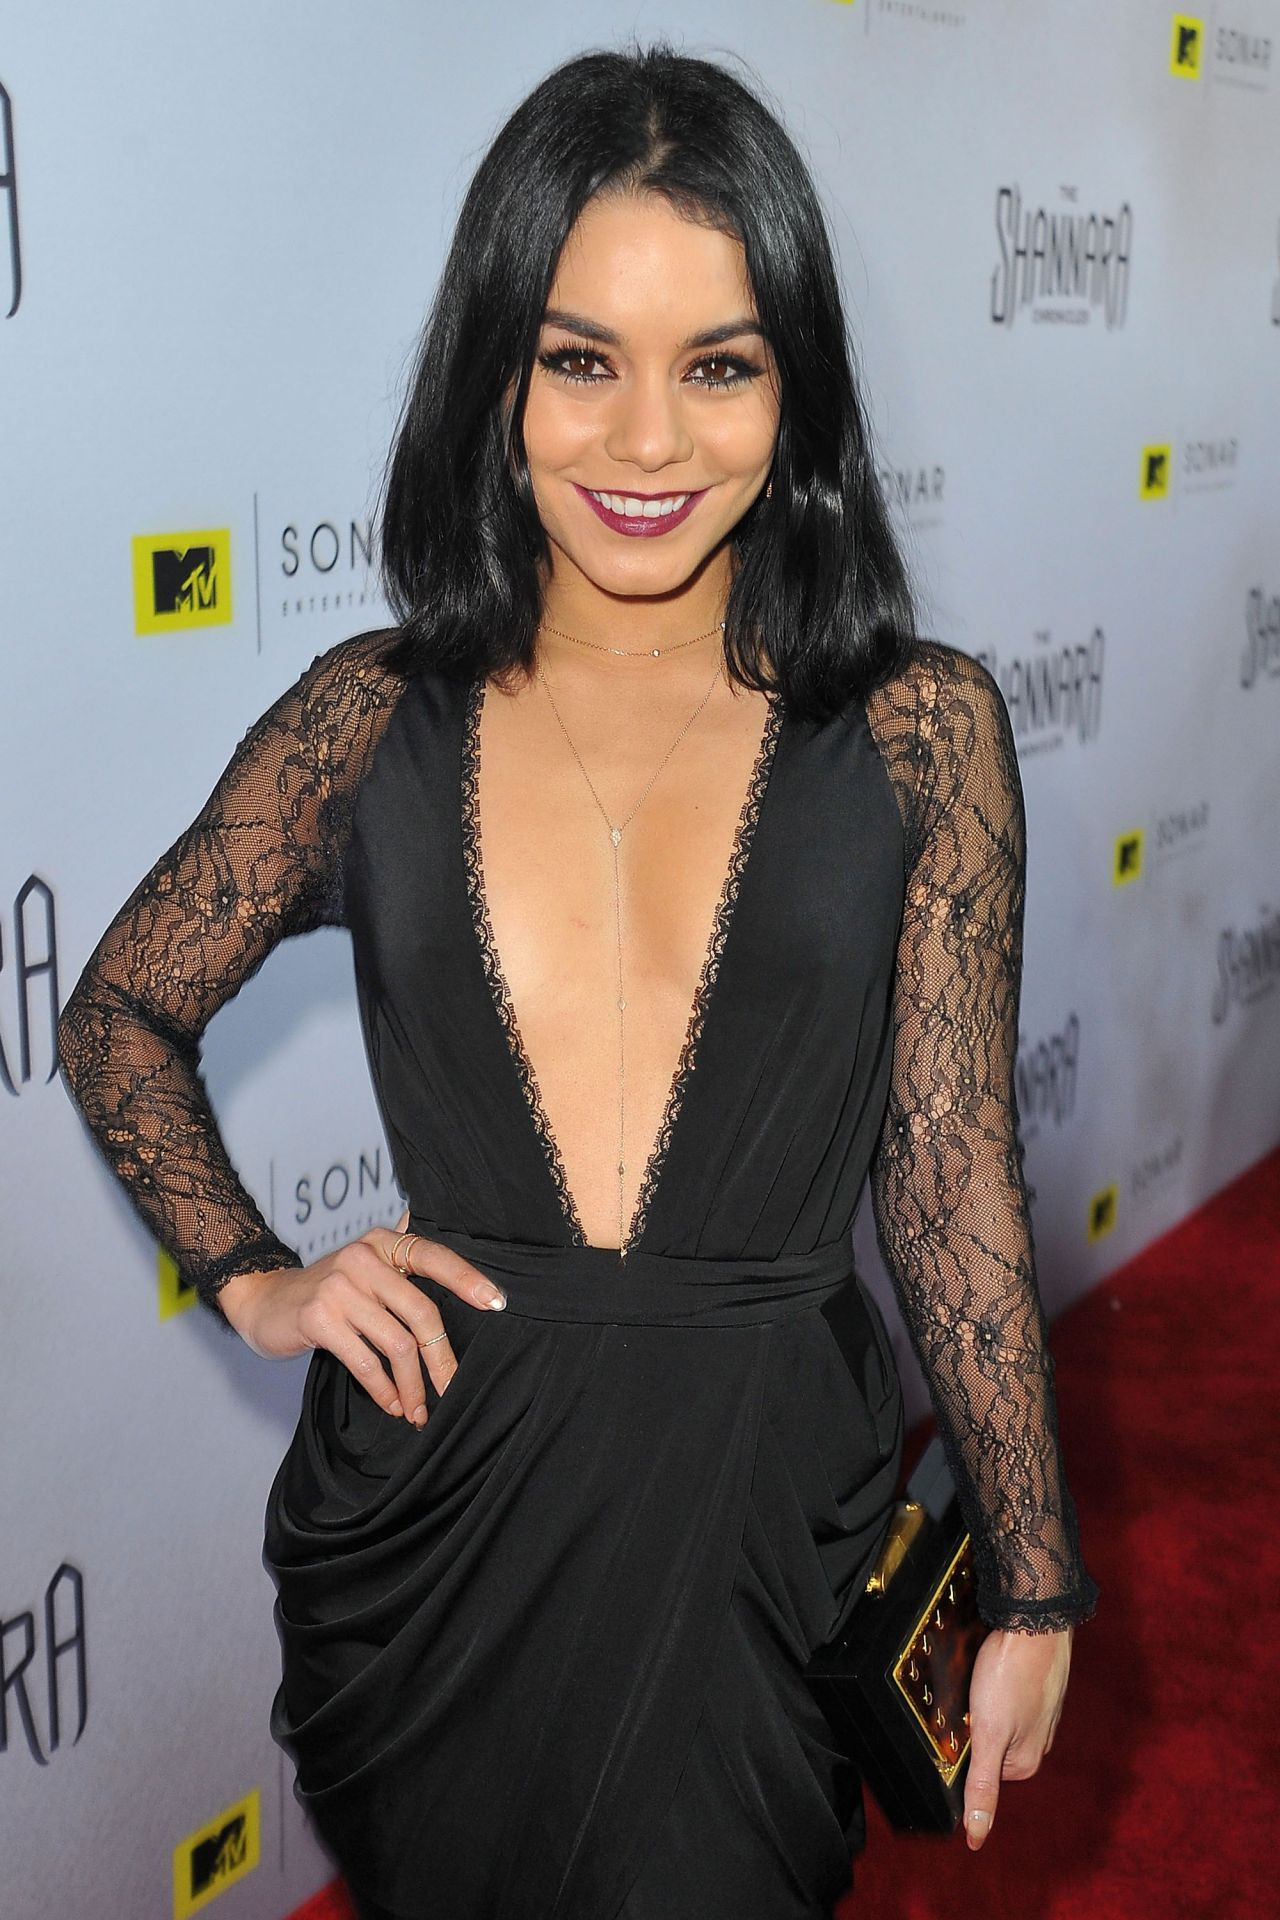 Vanessa Hudgens  The Shannara Chronicles Premiere Party in Los Angeles